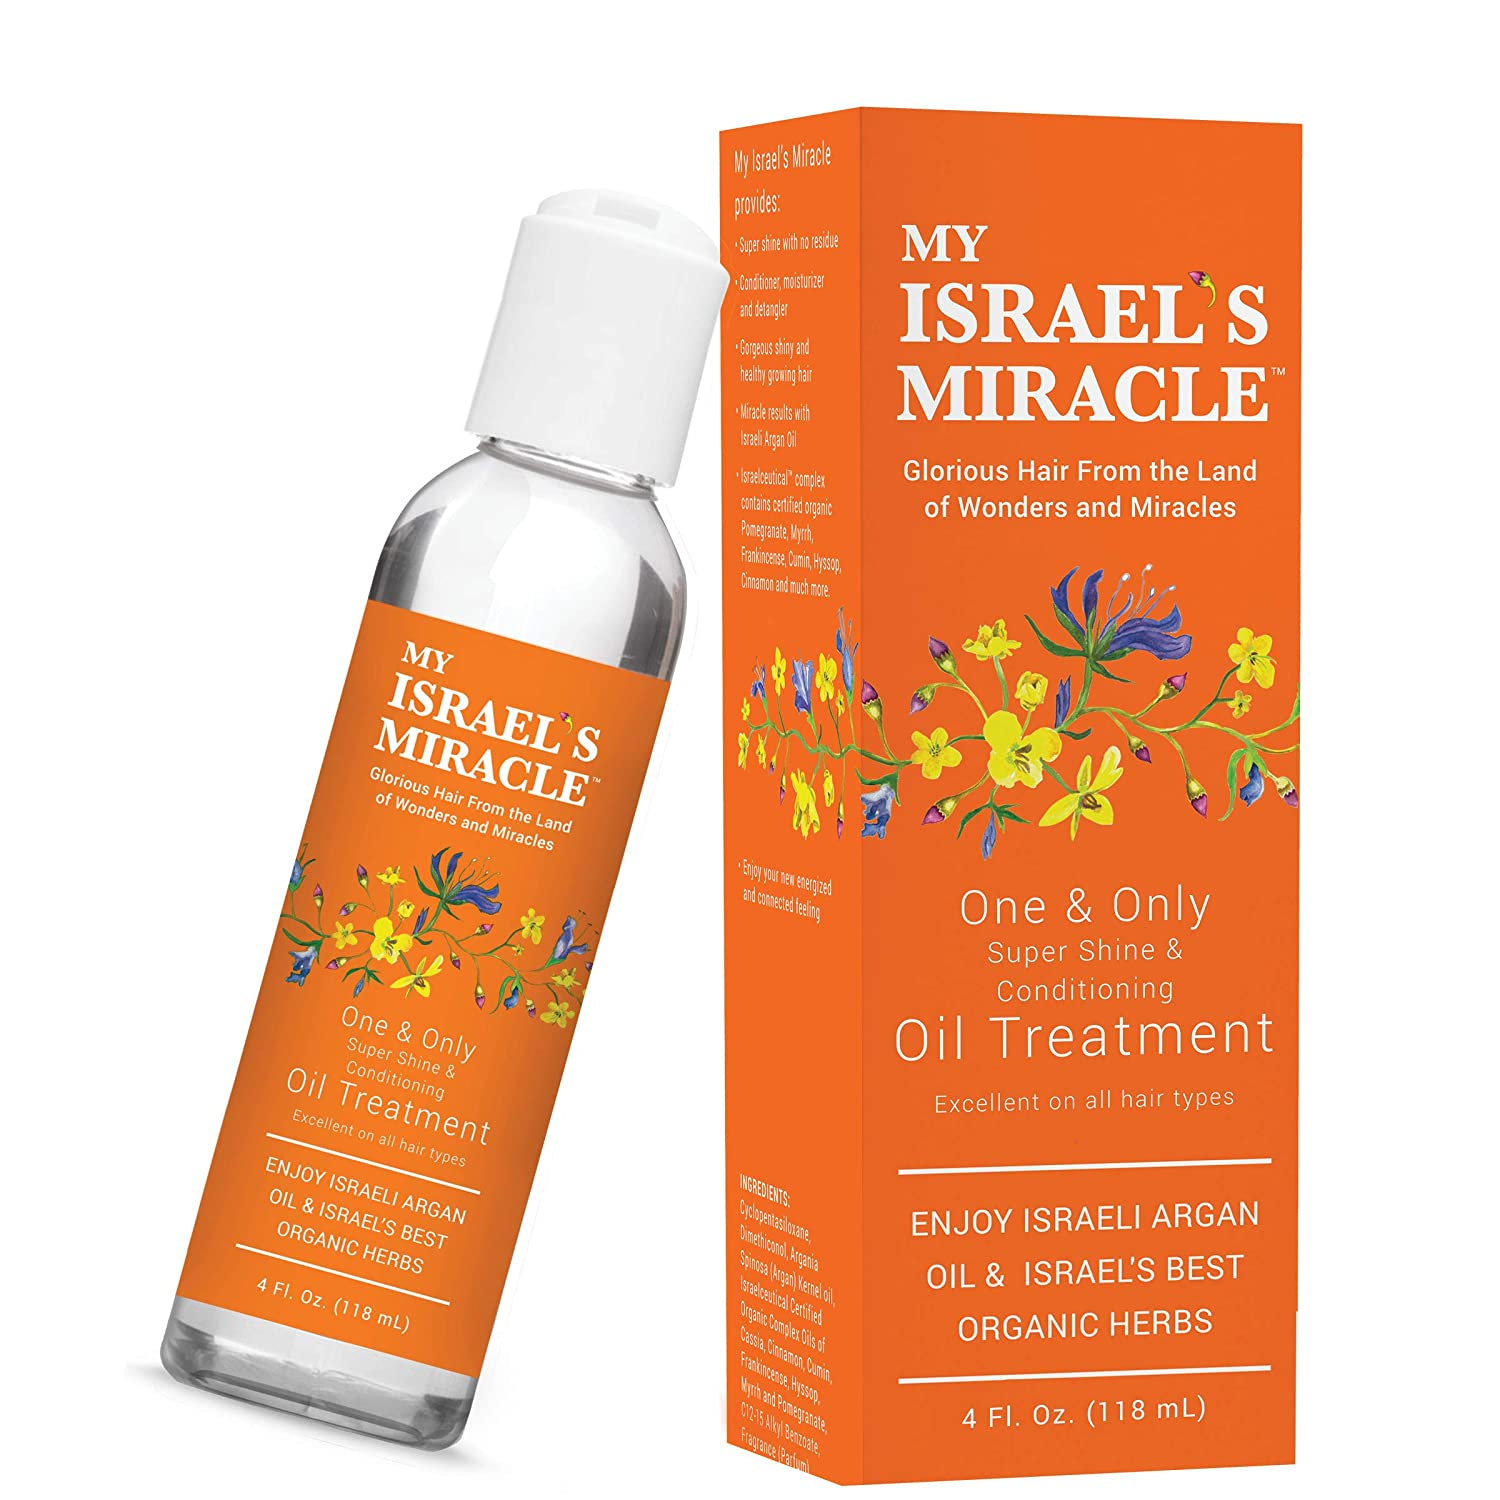 My Israel's Miracle One & Only Oil Treatment